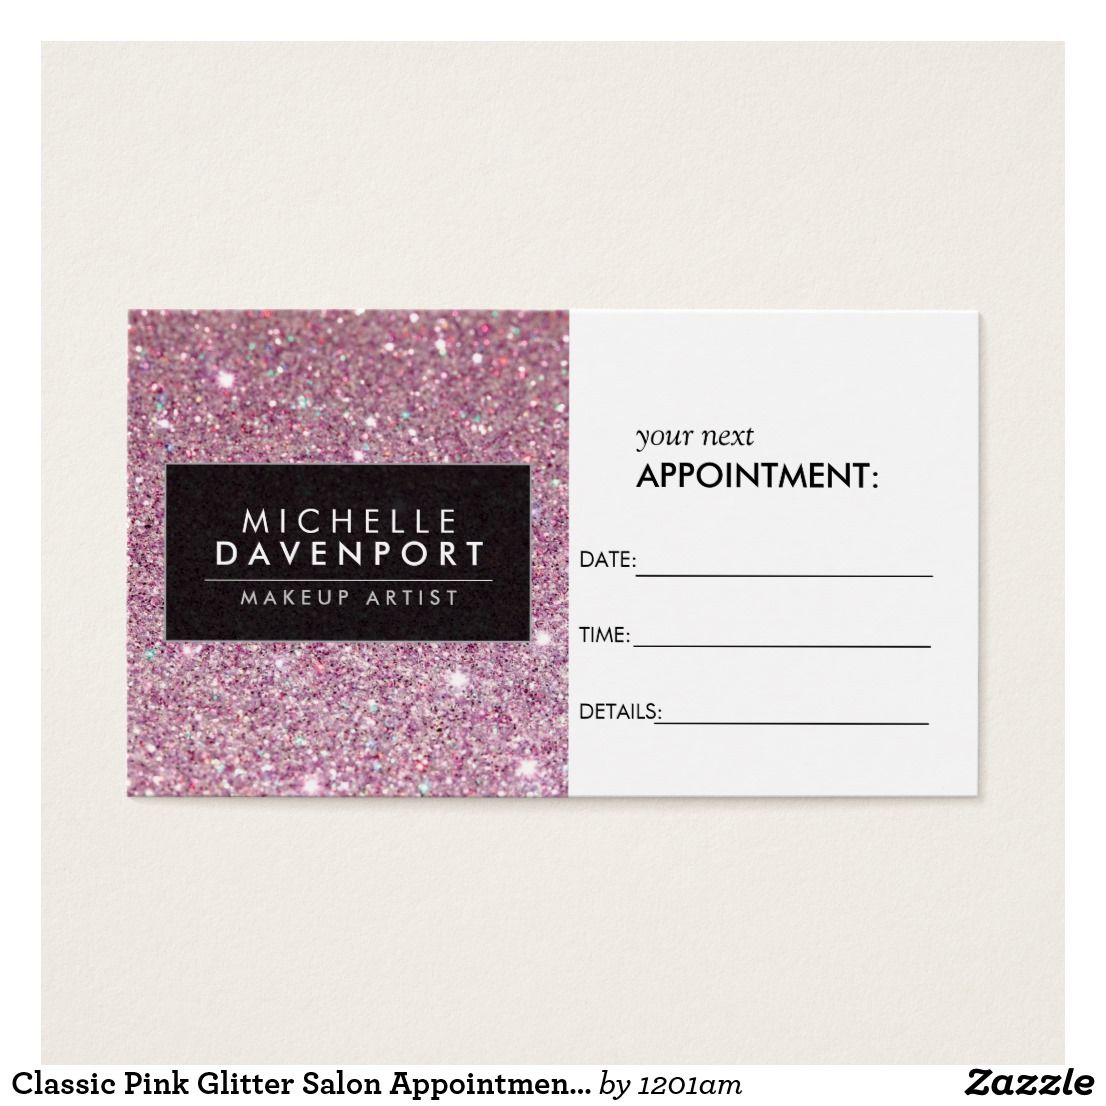 Classic Pink Glitter Salon Appointment Card Coordinates with the ...